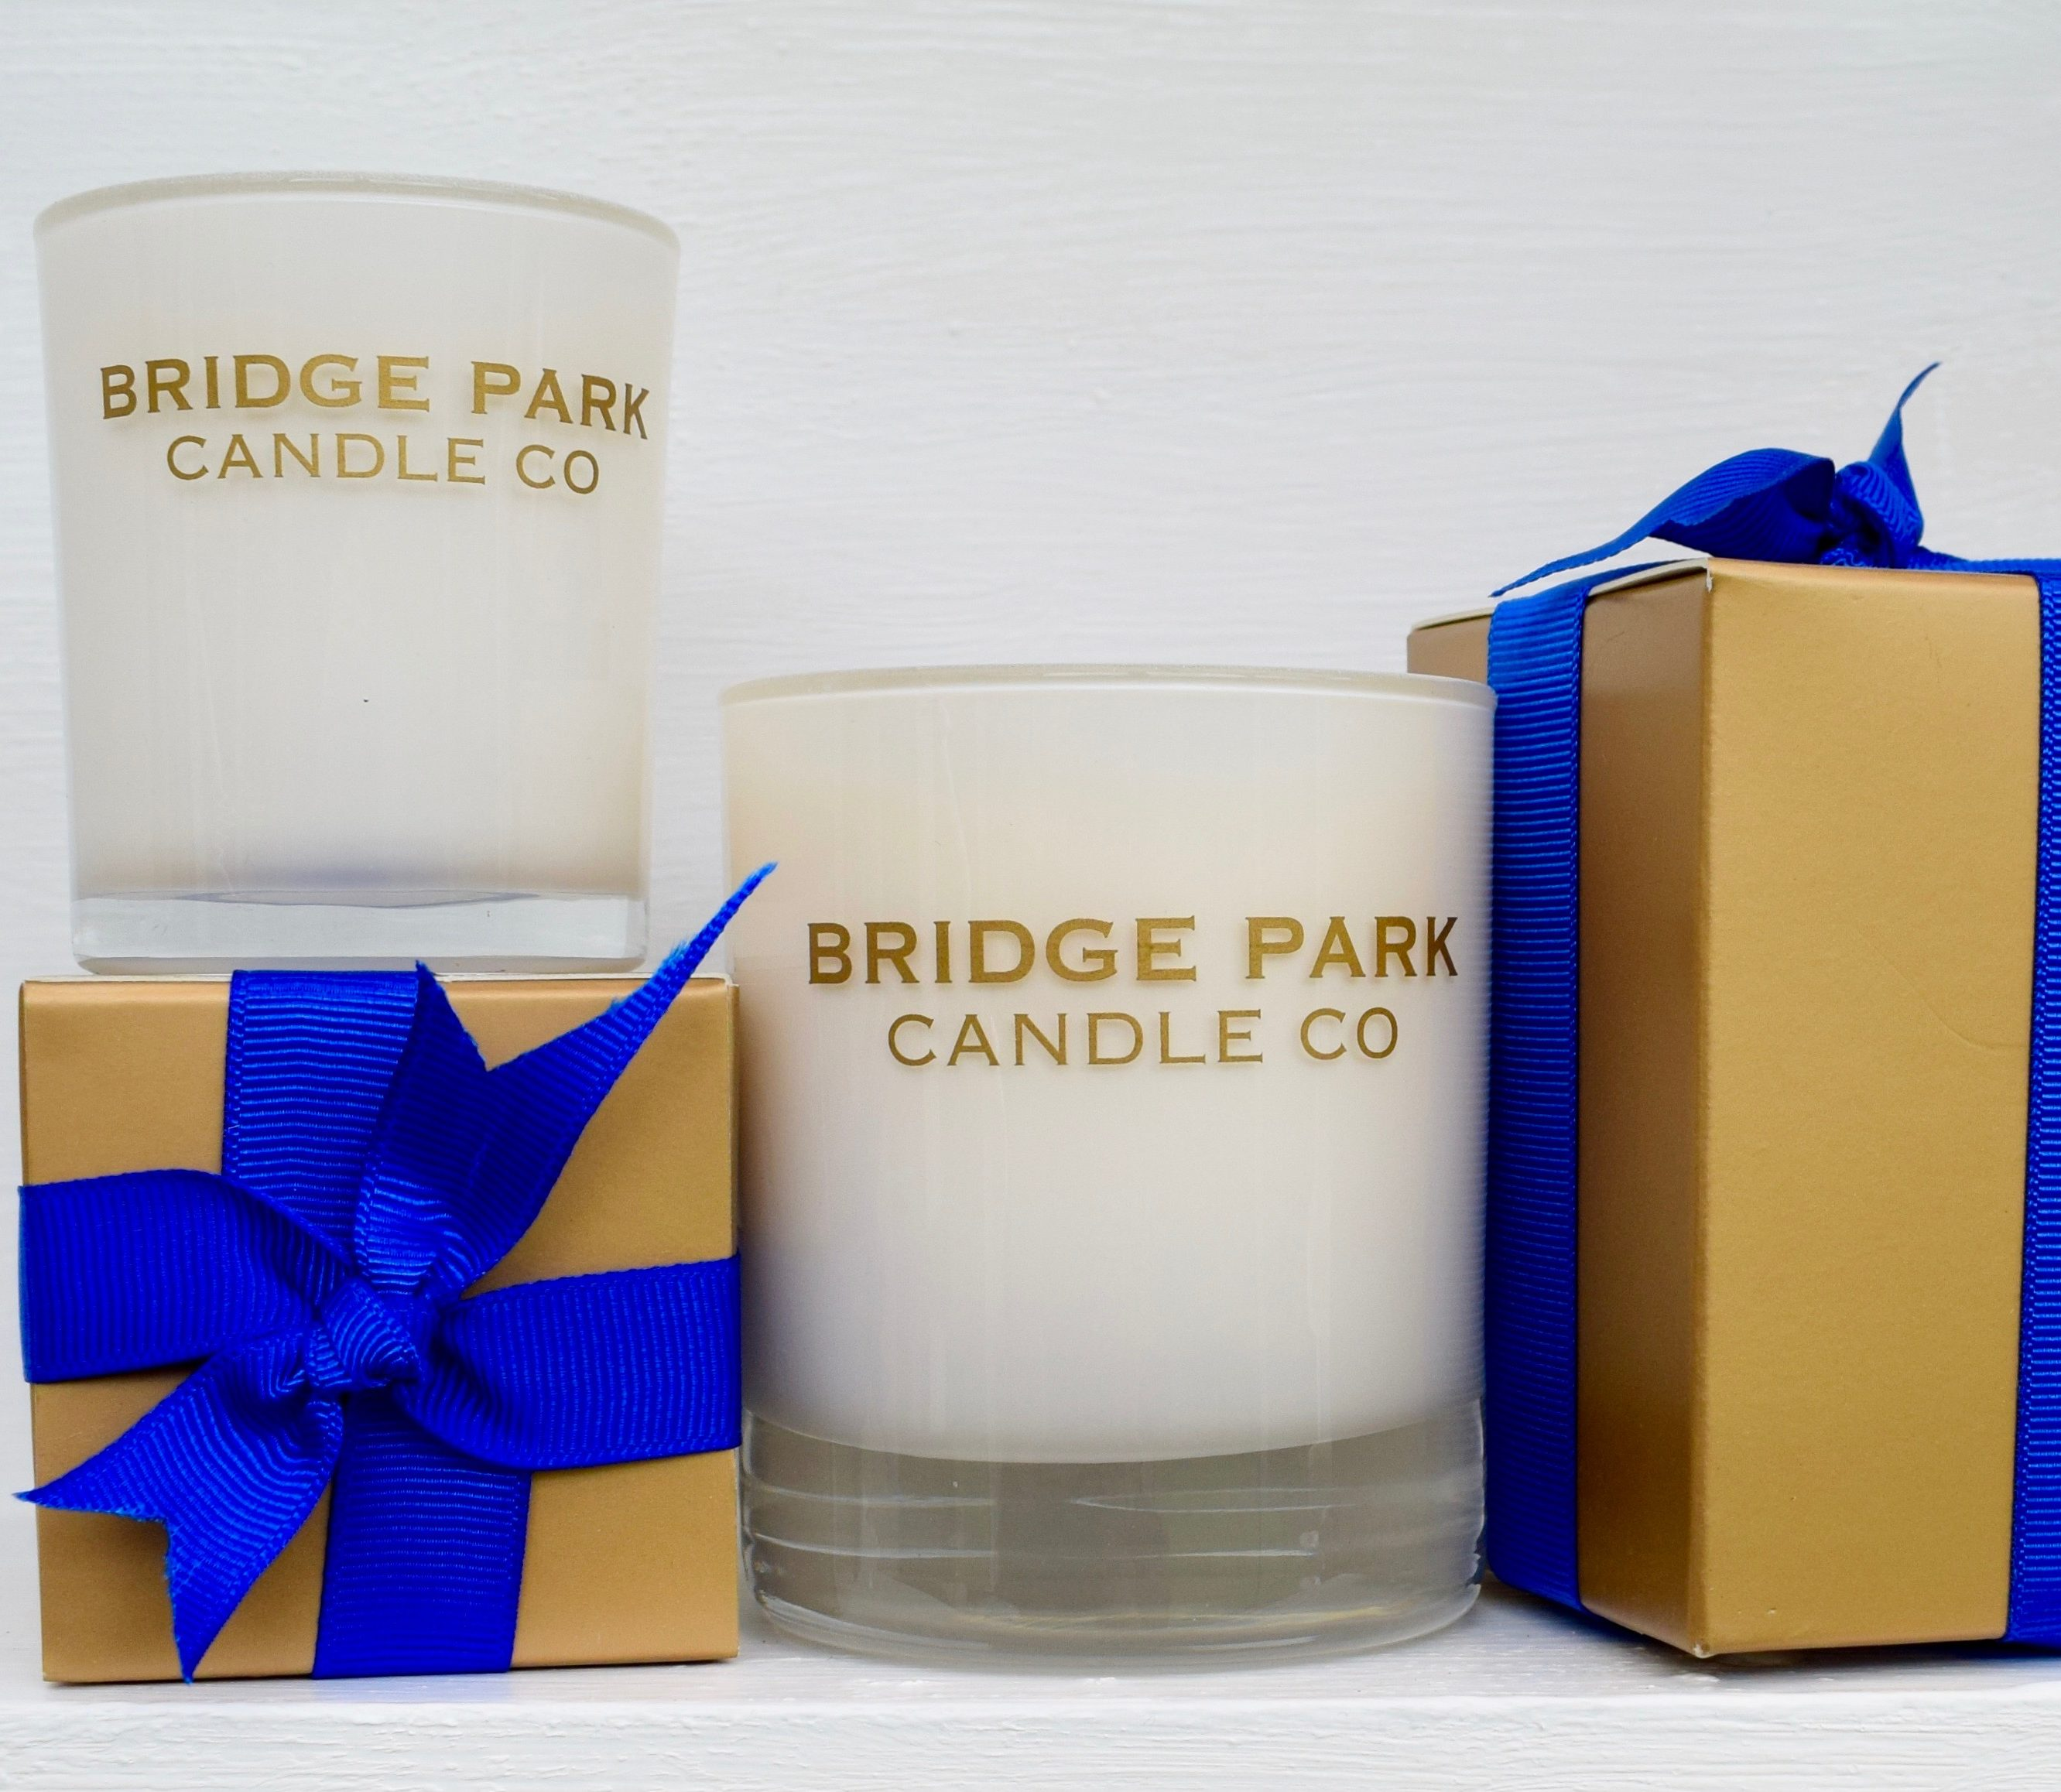 Bridge Park Candle Co, Pedddle